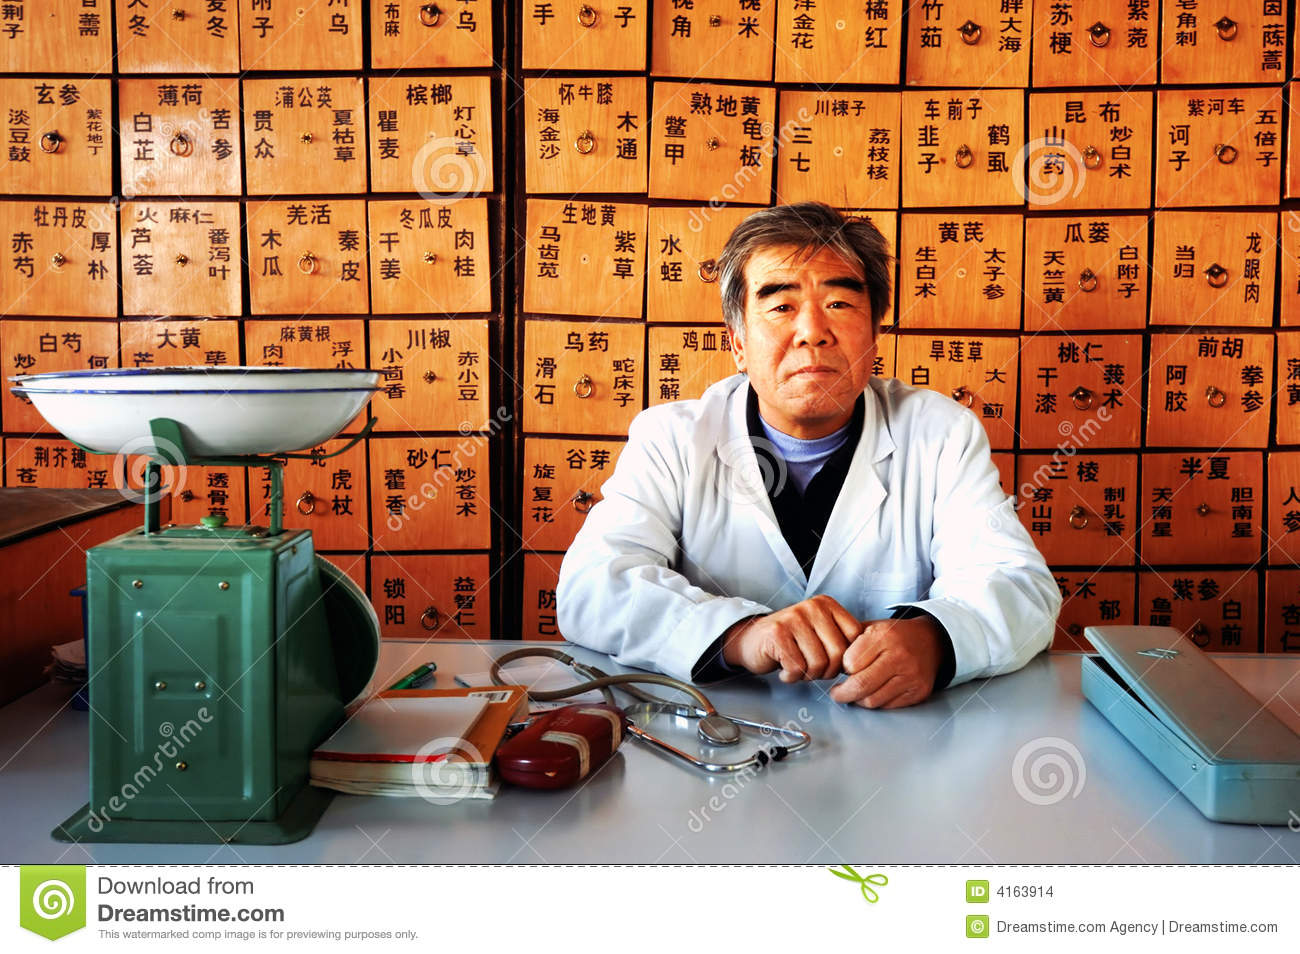 6 Traditional Chinese Medicine Techniques